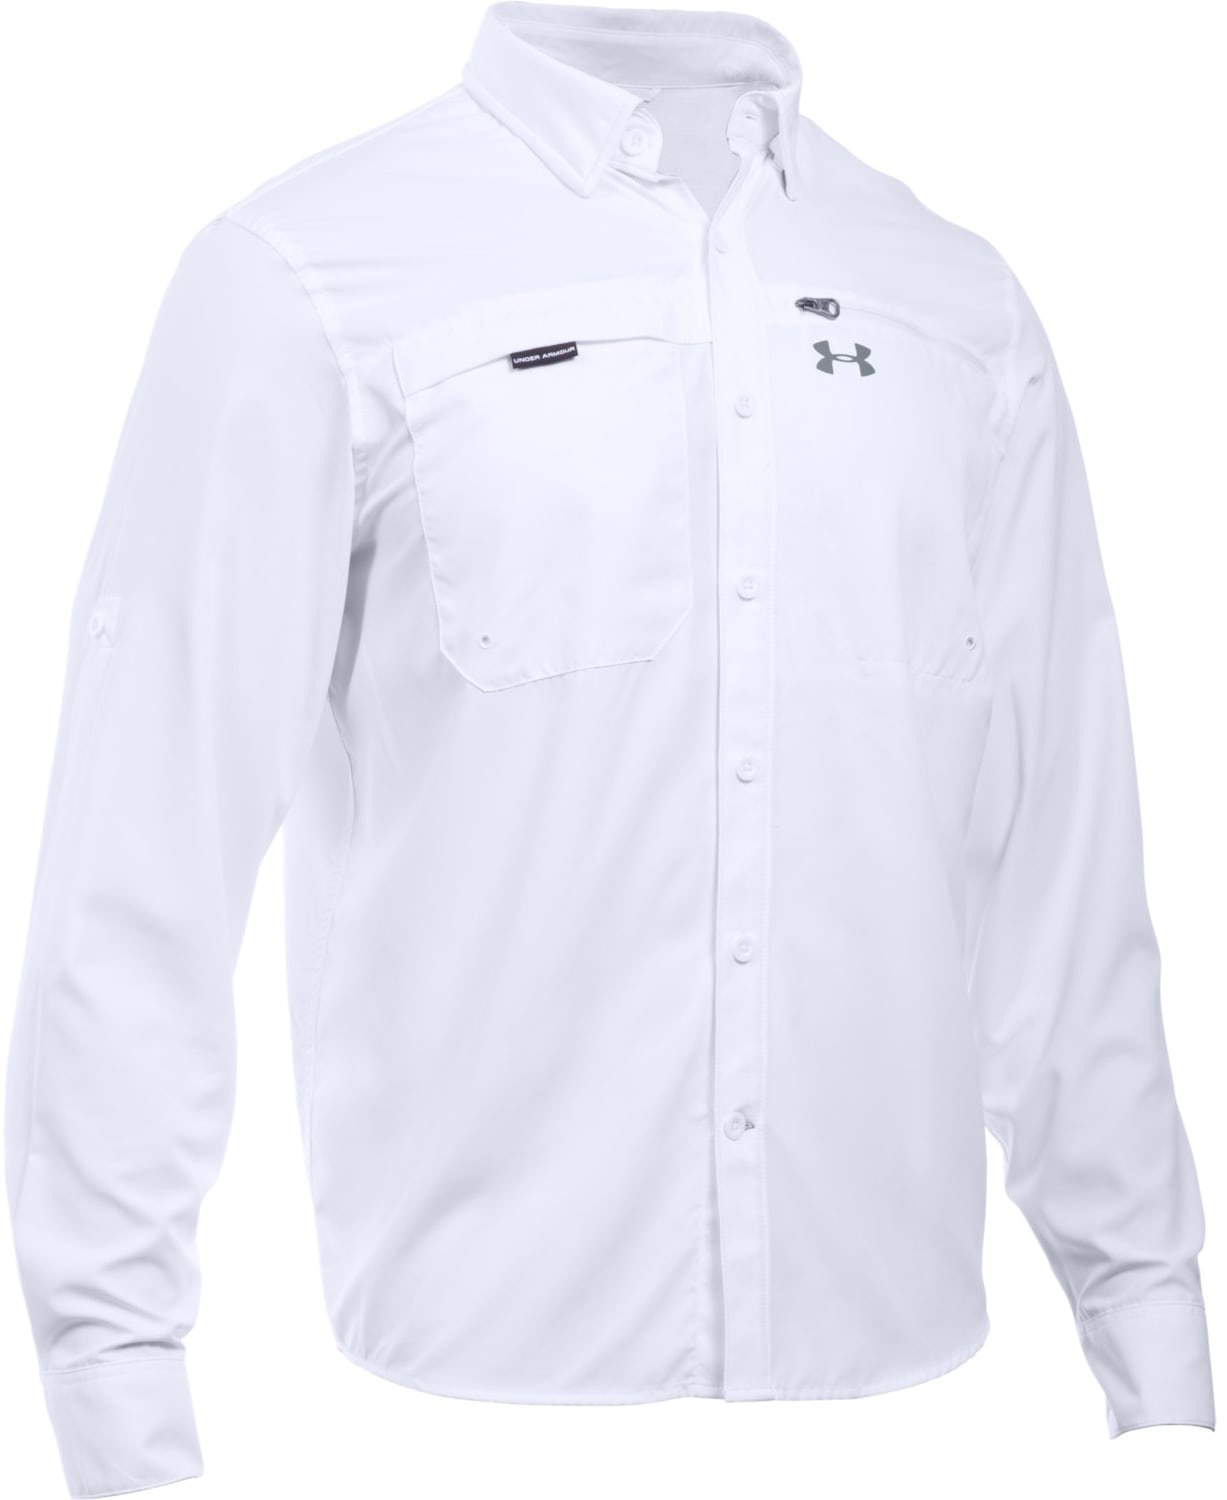 On sale under armour fish stalker l s shirt up to 45 off for Ua shirts on sale